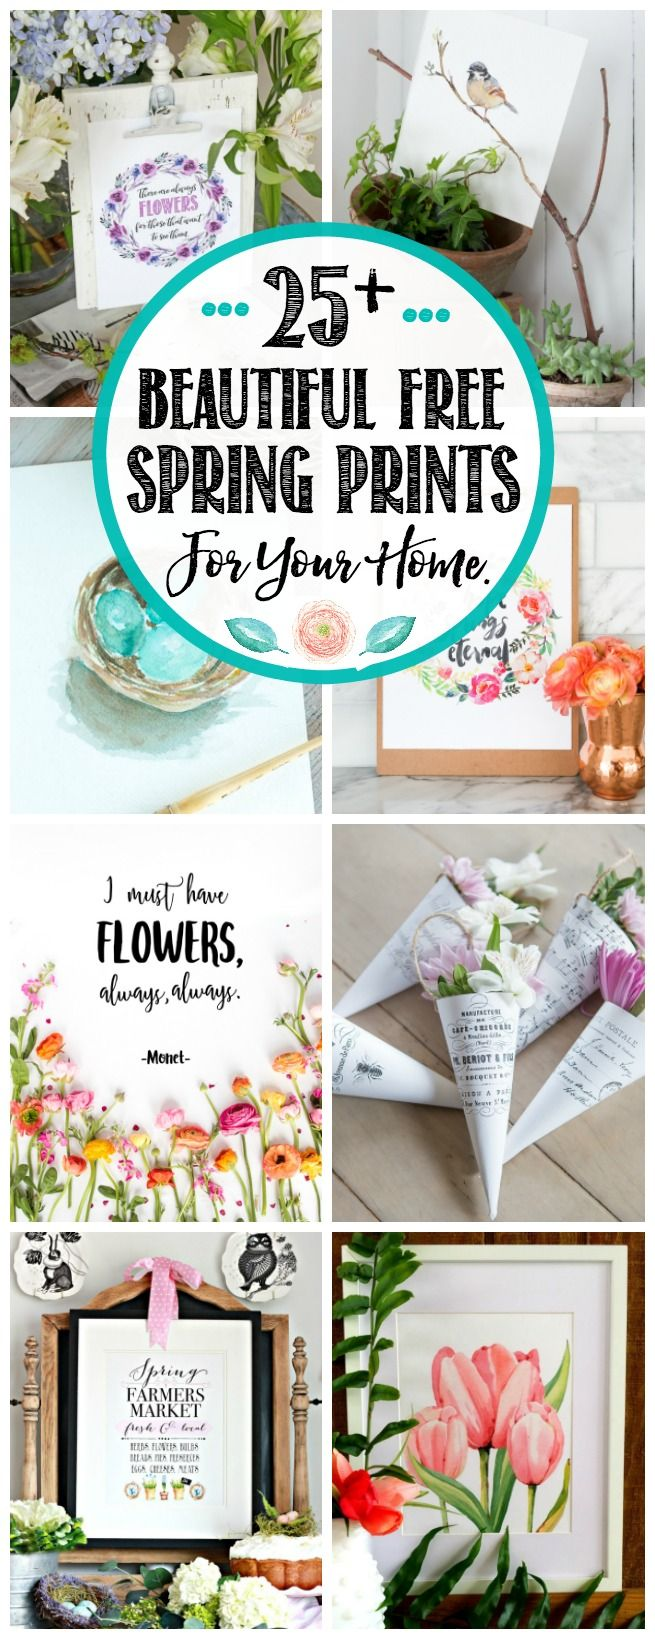 Gorgeous collection of free spring printables for your home.  Over 25 different designs to choose from.  Quick and easy spring decorating ideas!